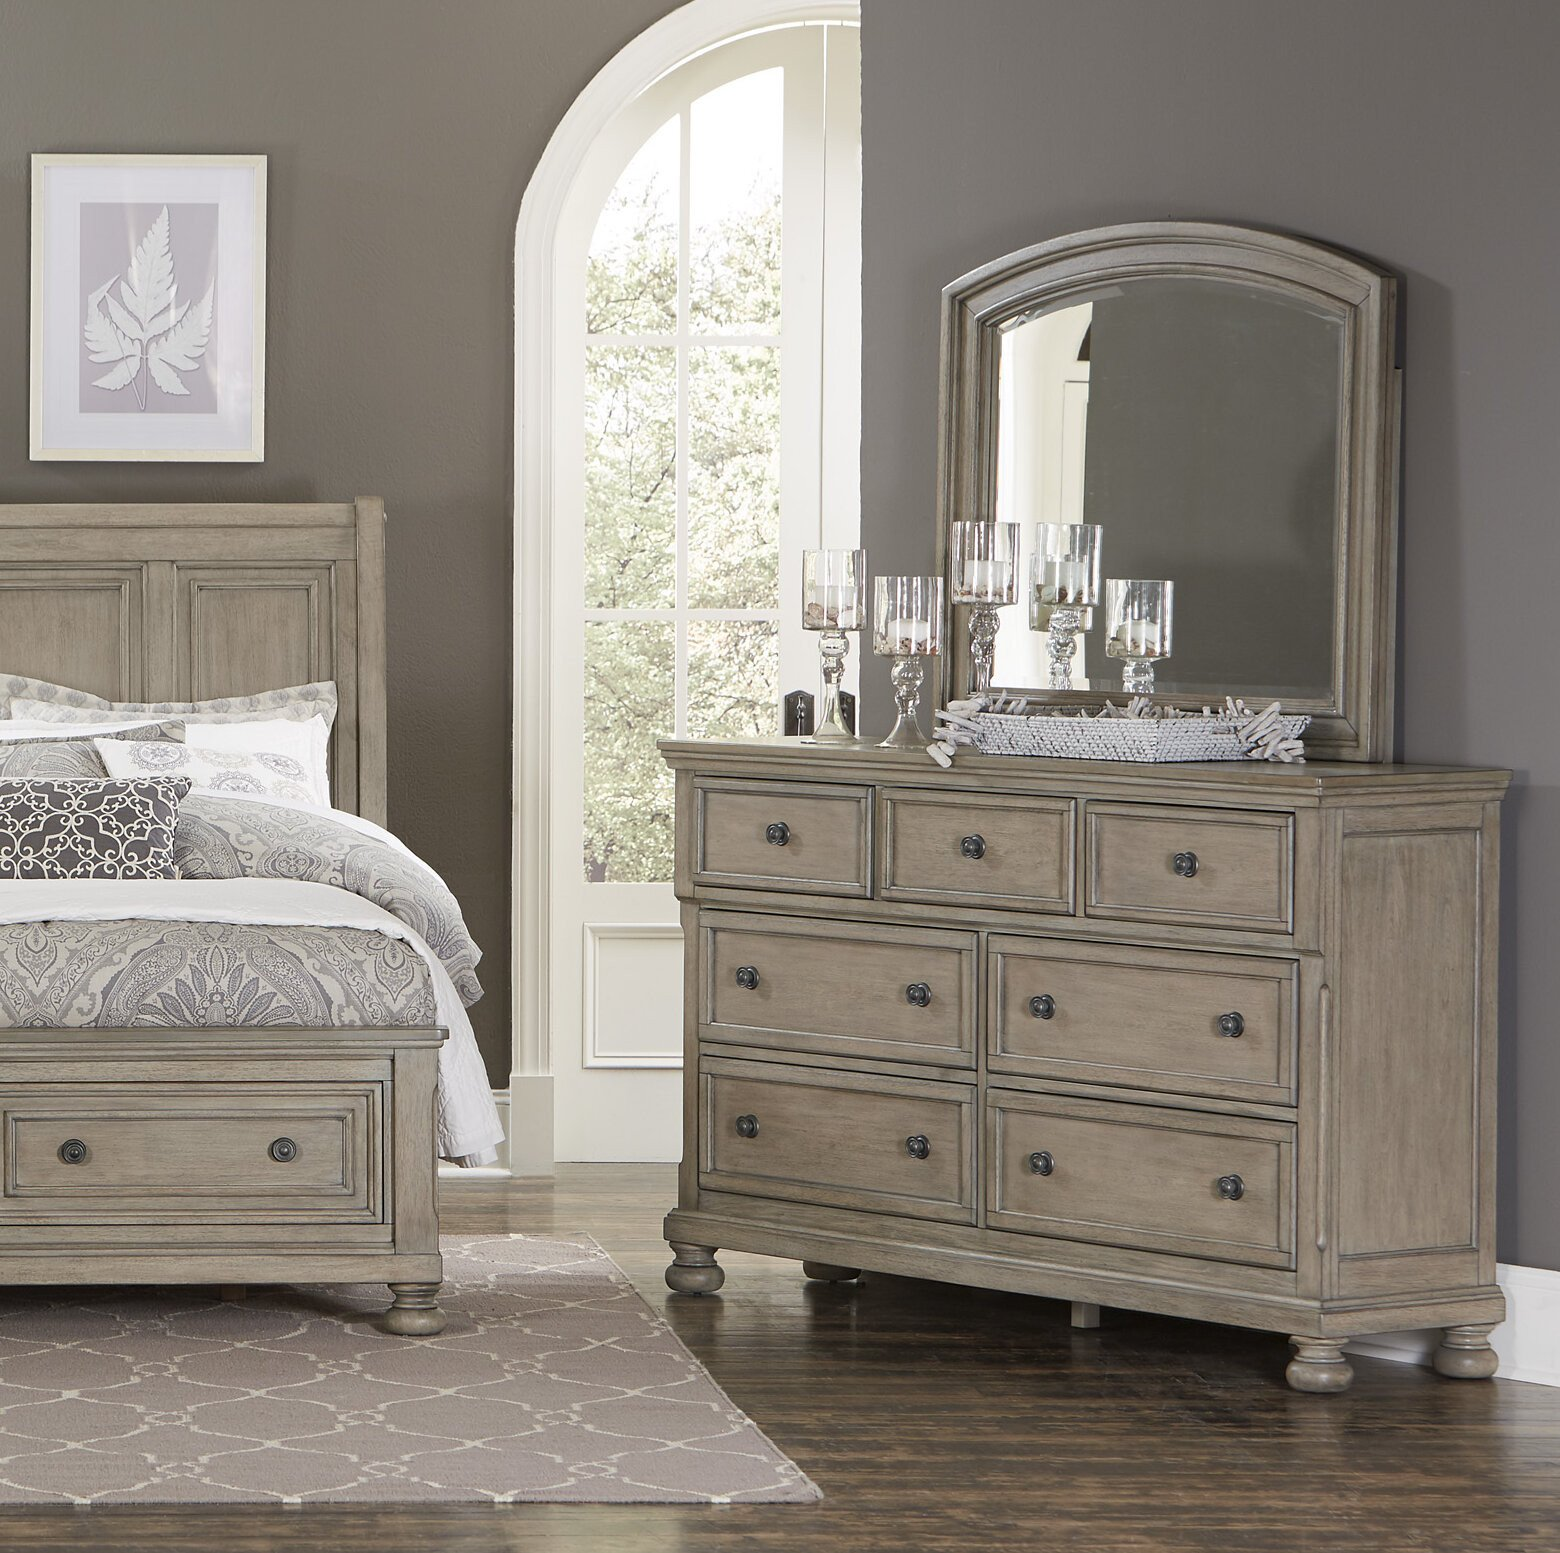 Vaughan Bassett Bedroom Set New Carleton Bedroom Furniture Bedroom Furniture Ideas